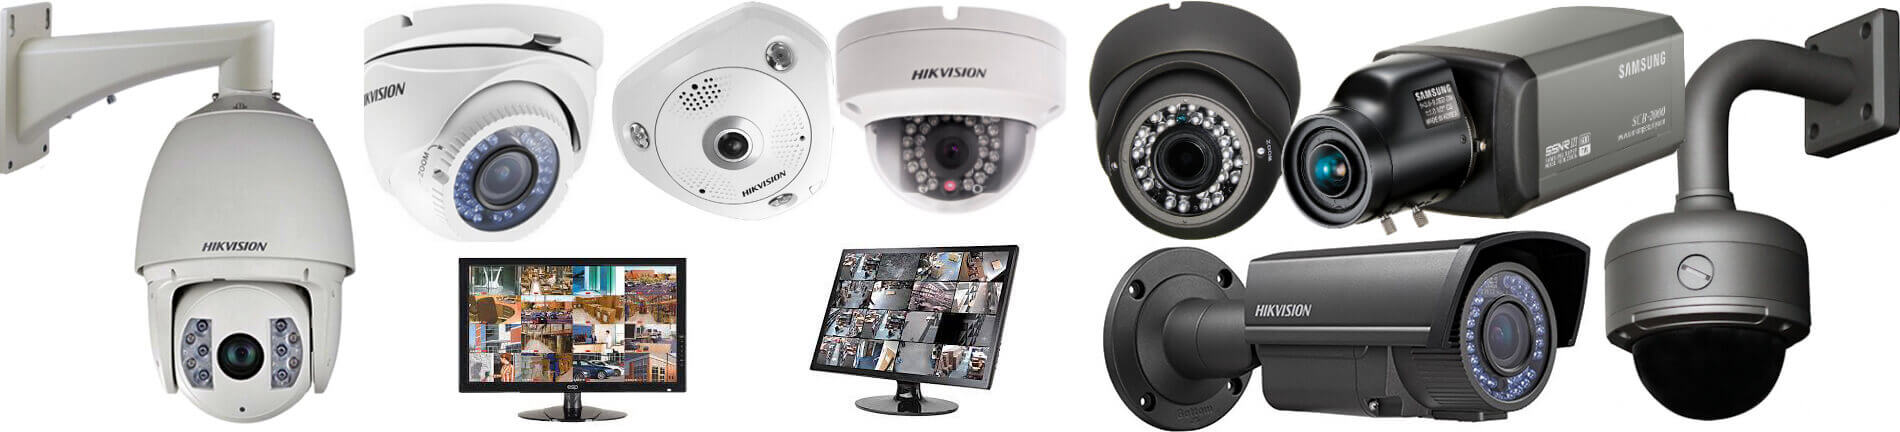 CCTV dubai - cctv - CCTV Dubai UAE | CCTV Security Camera Dubai | CCTV Company in Dubai